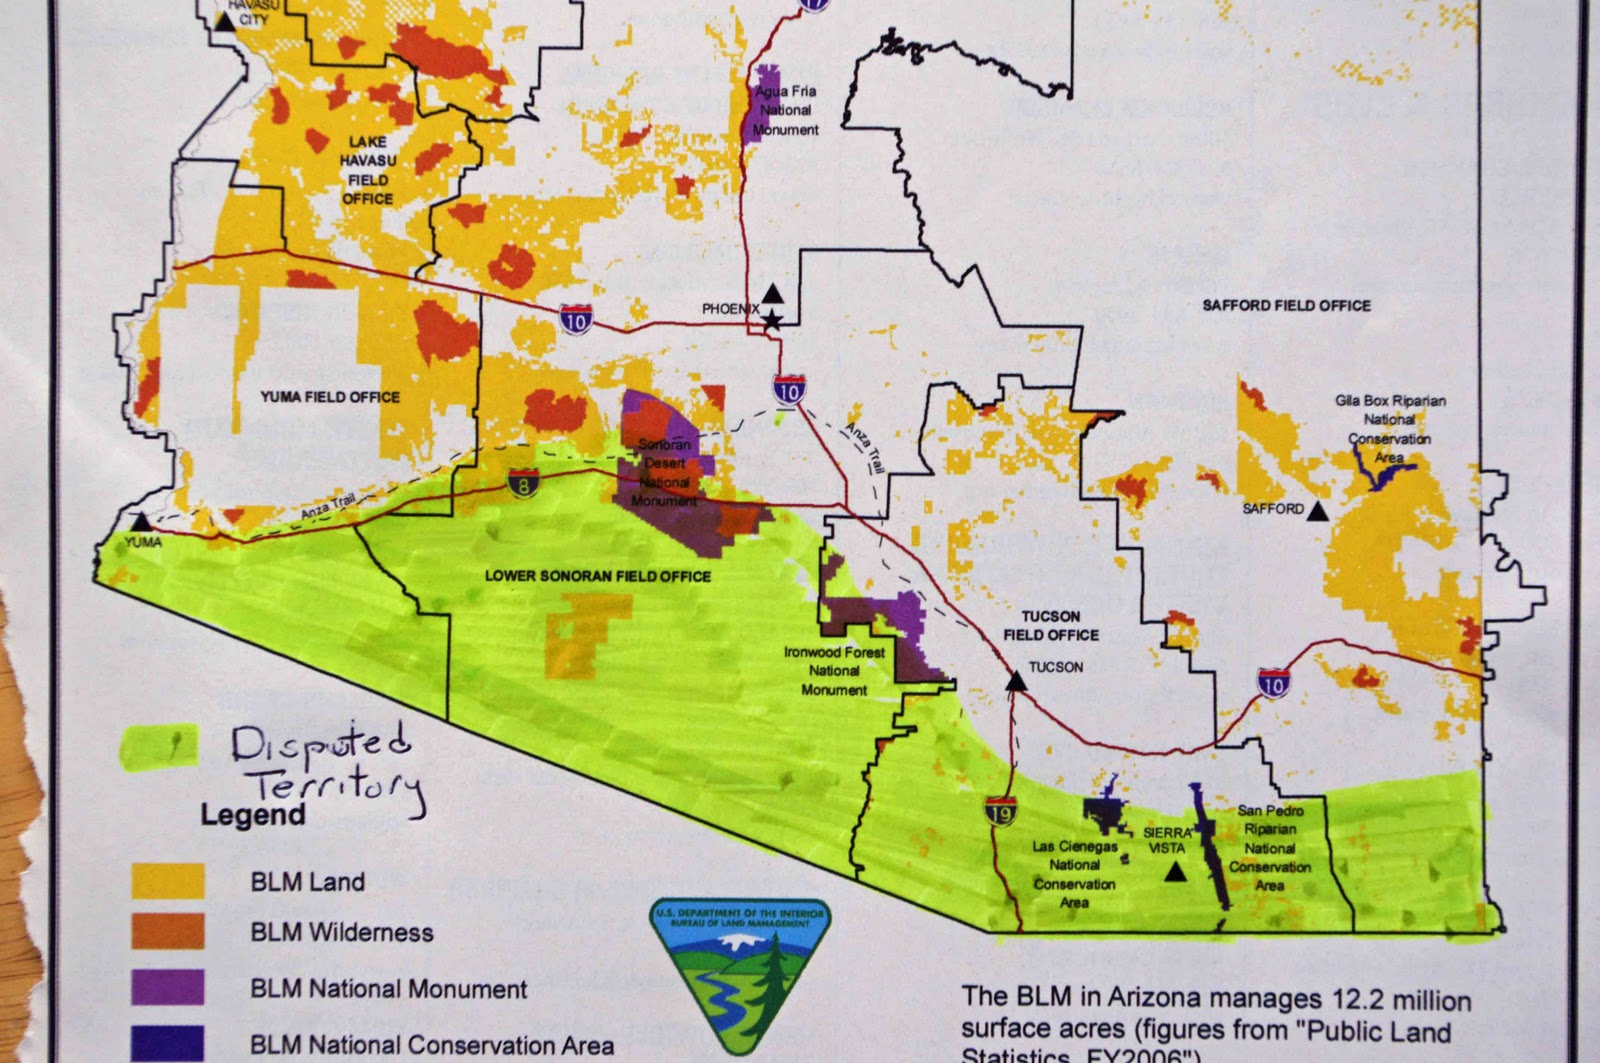 Map Of Arizona Blm Land.Traveling And Boondocking In The Disputed Territories Of Arizona